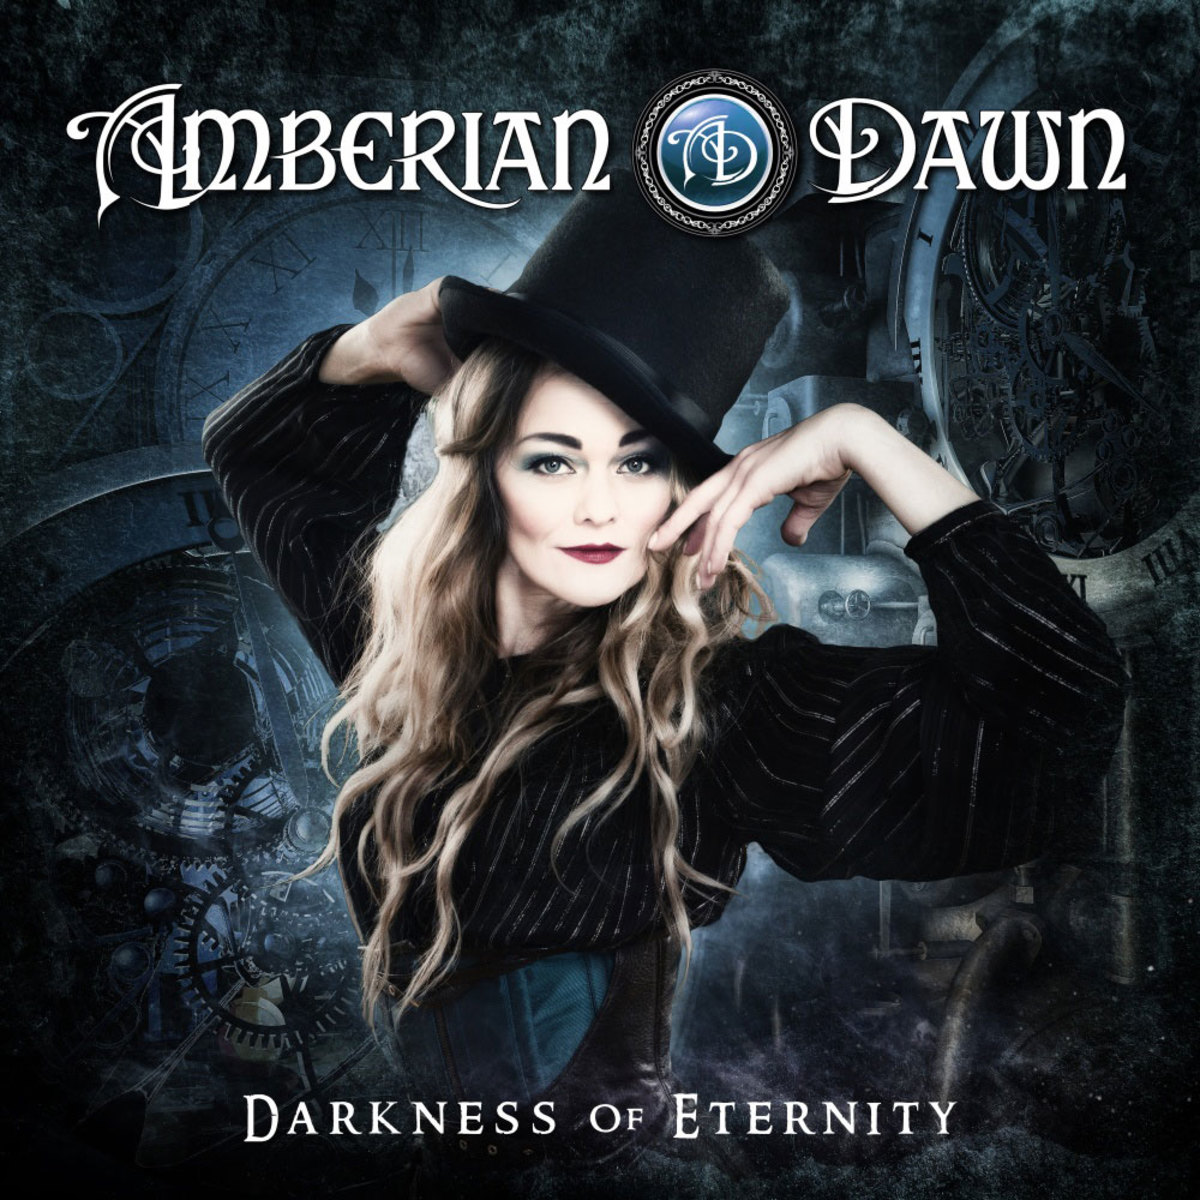 In the center of the album cover for Darkness of Eternity is Capri Virkkunen who looks like a very beautiful magician.